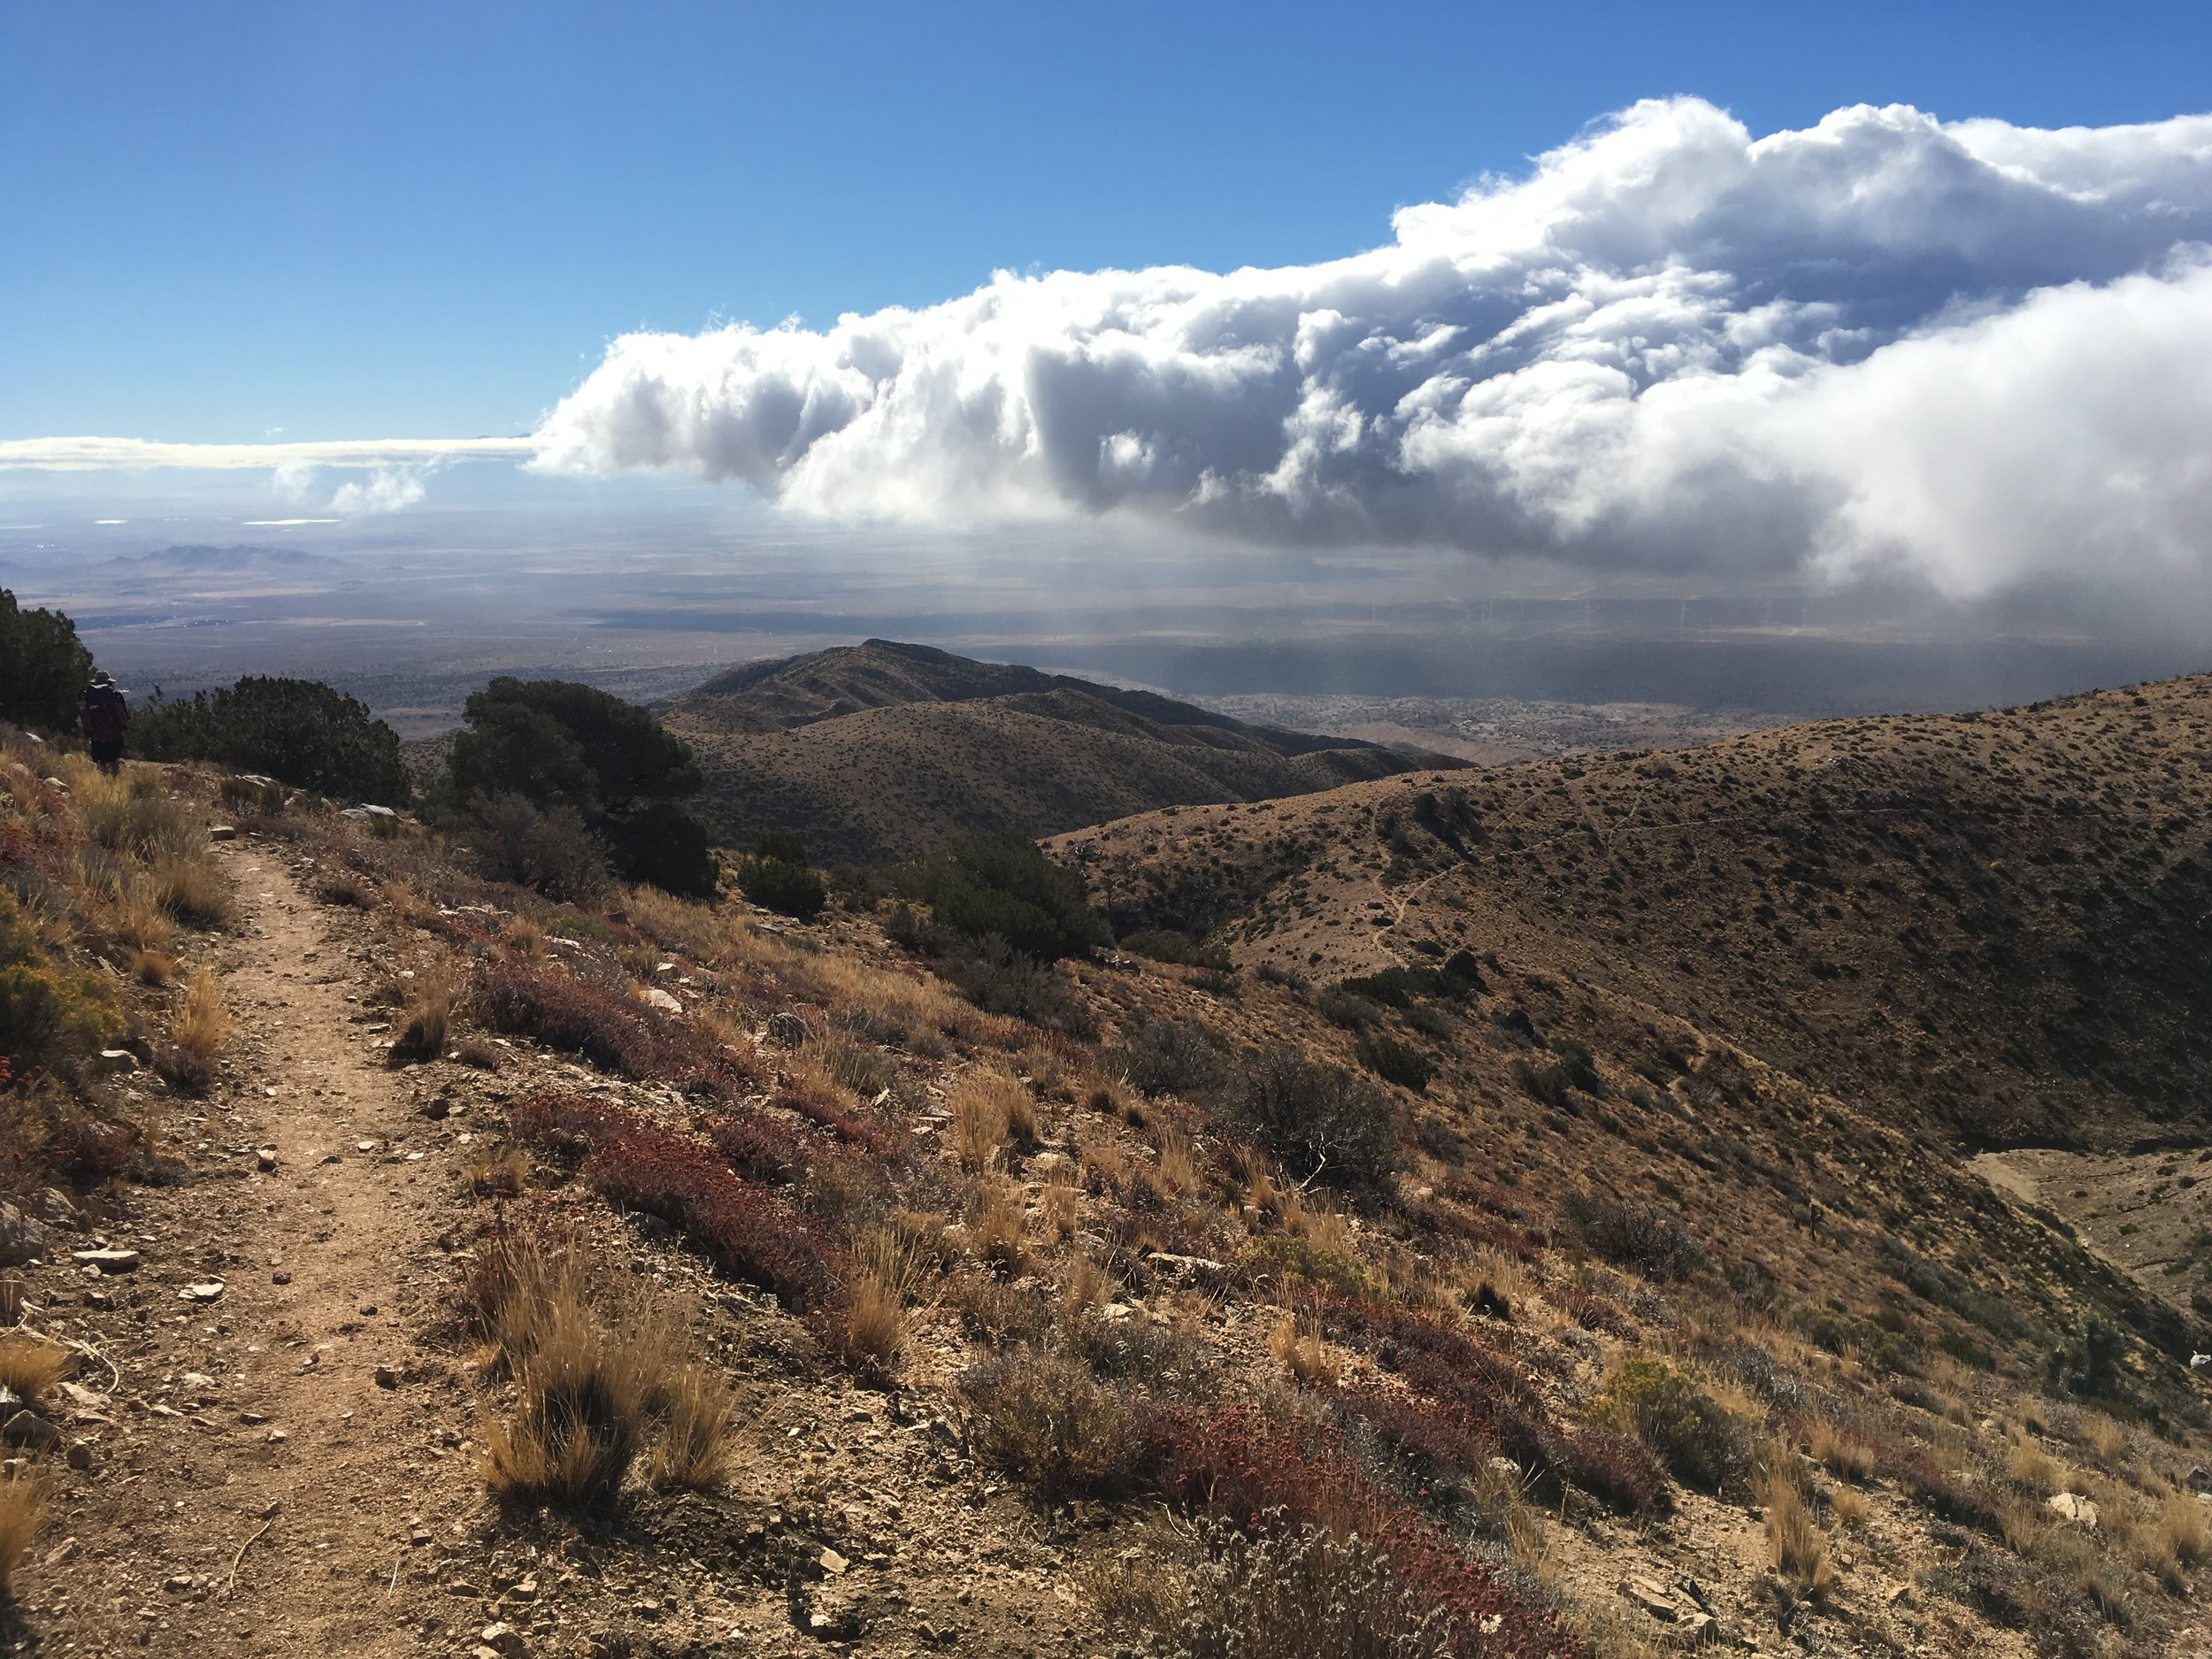 This tongue of cloud persisted all day and jutted out into the desert. I didn't think an already dramatic land could look more so, but it did.